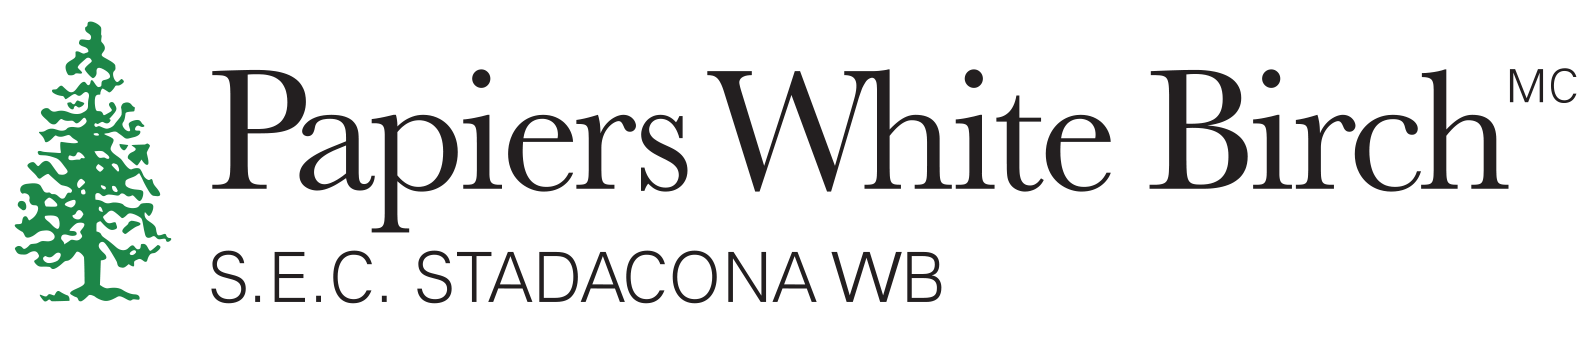 Papiers white birch logo